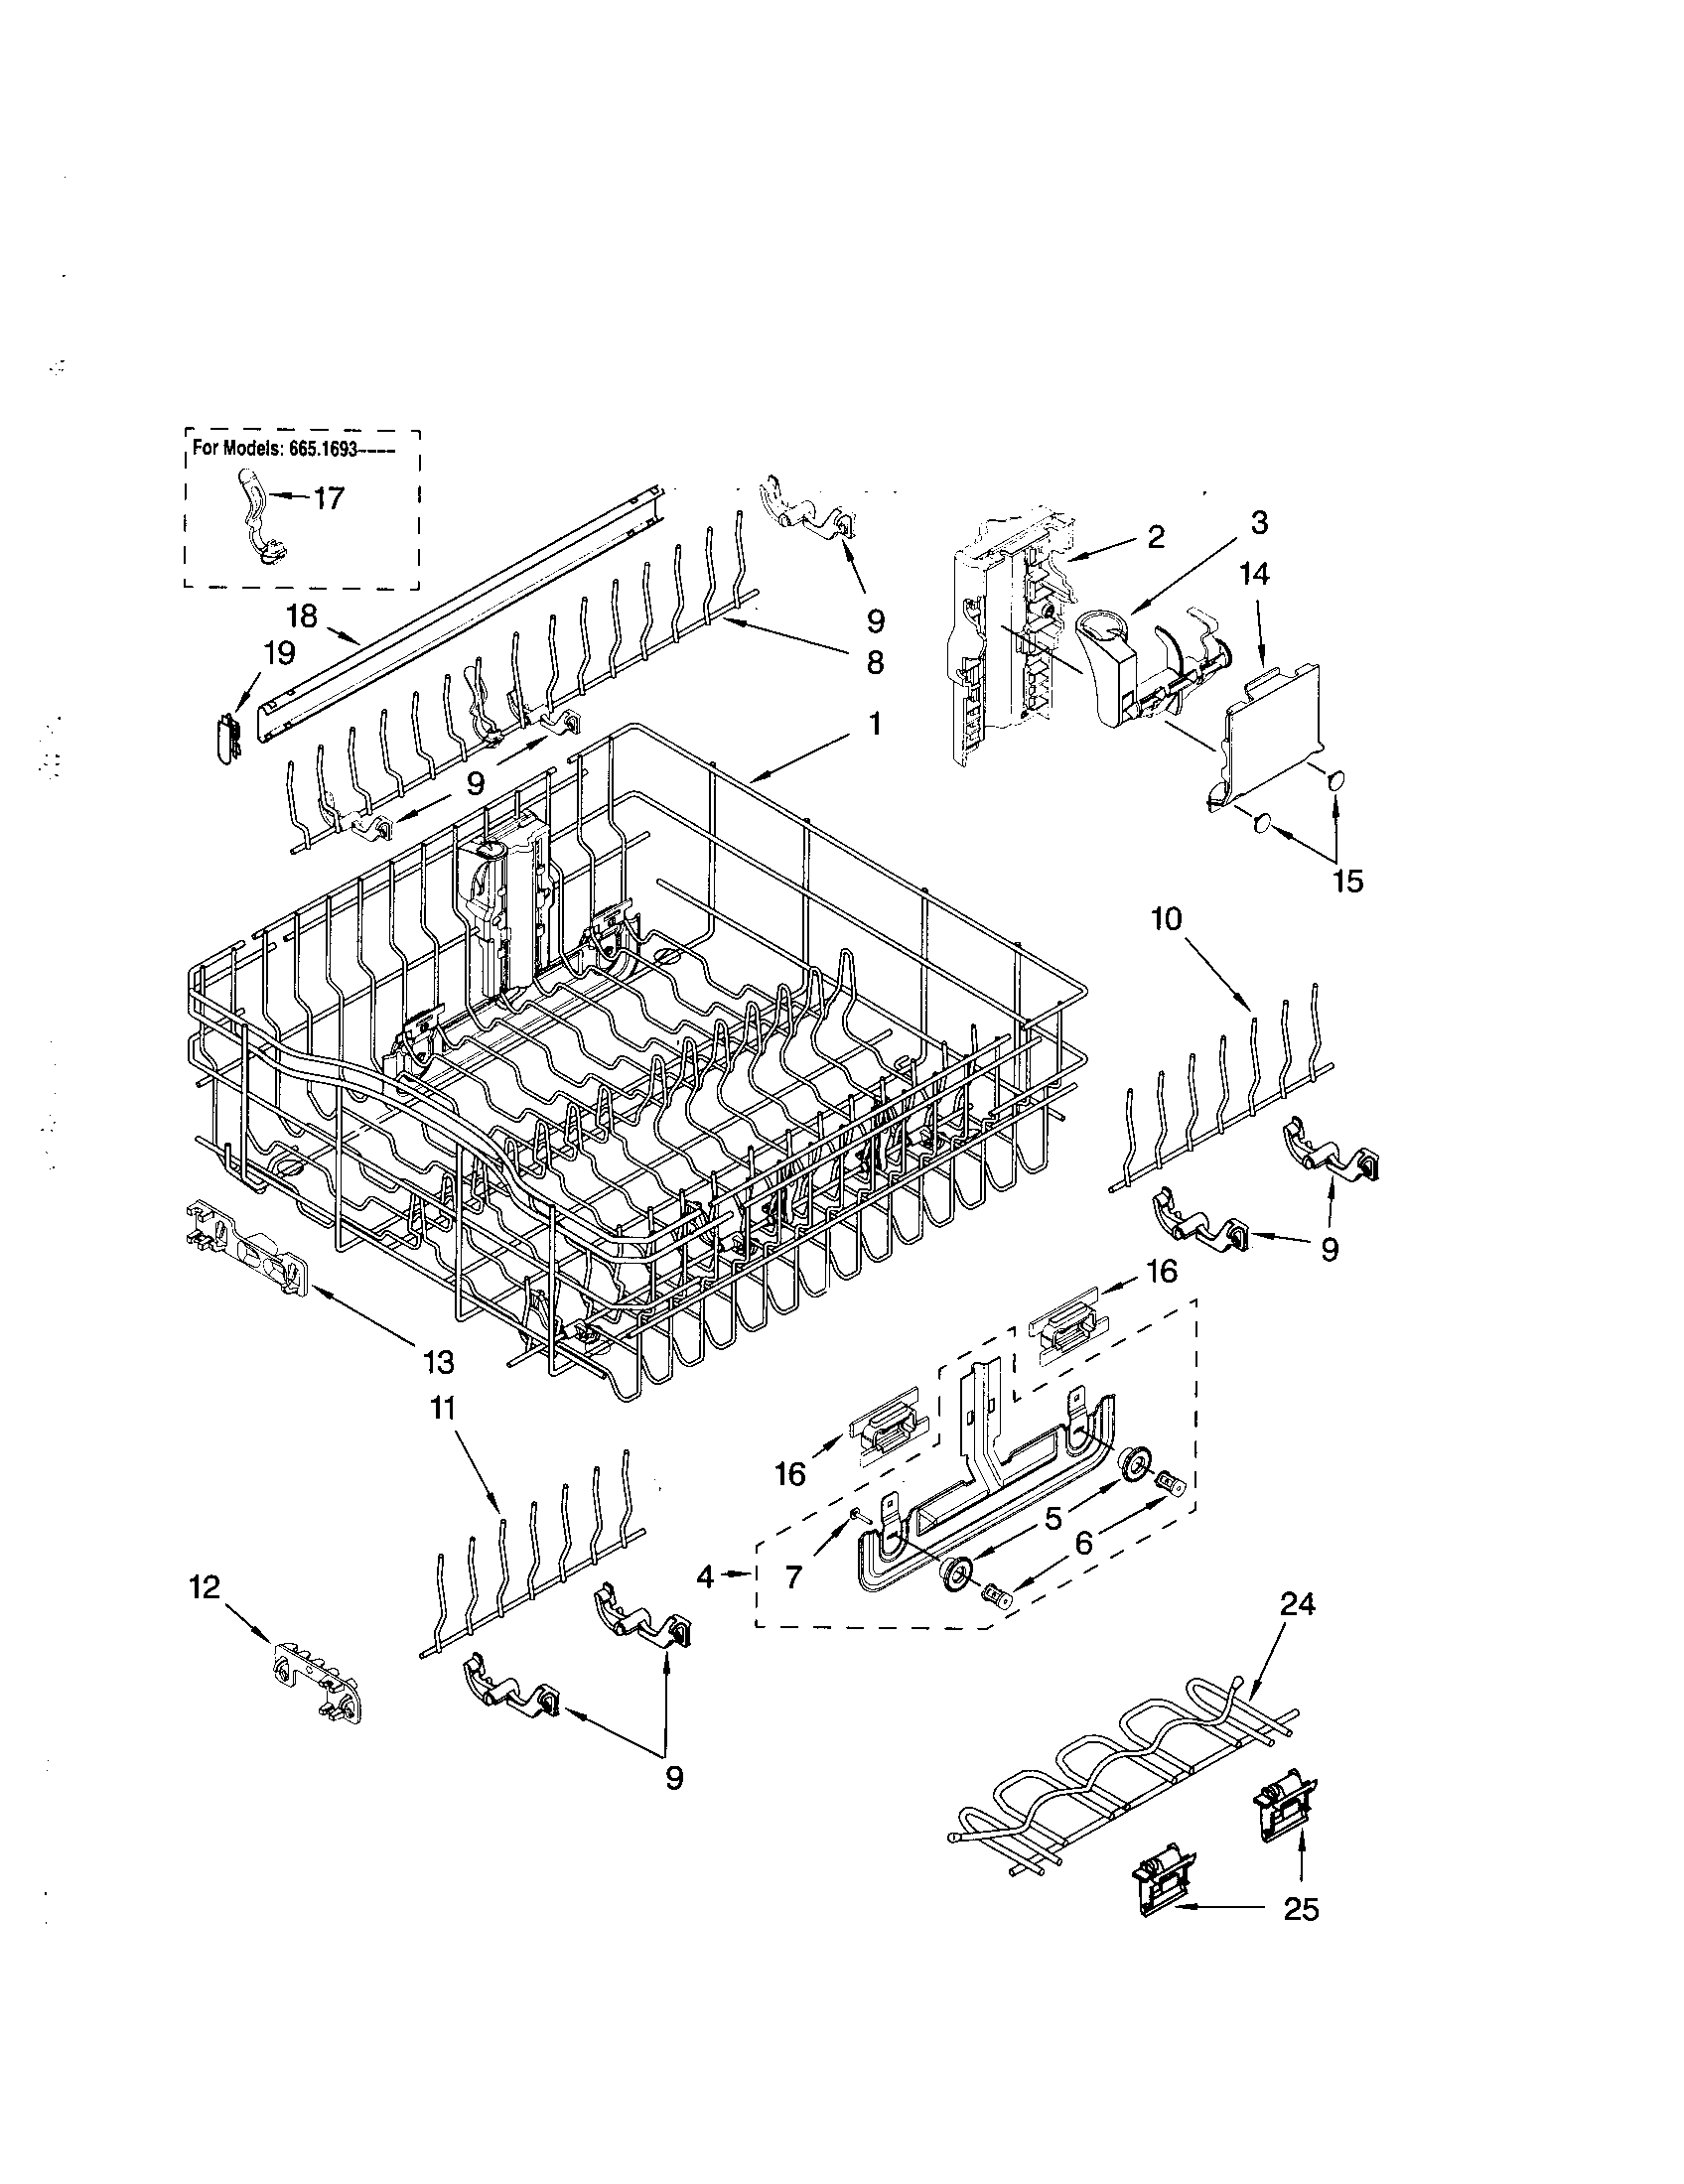 UPPER RACK AND TRACK Diagram & Parts List for Model